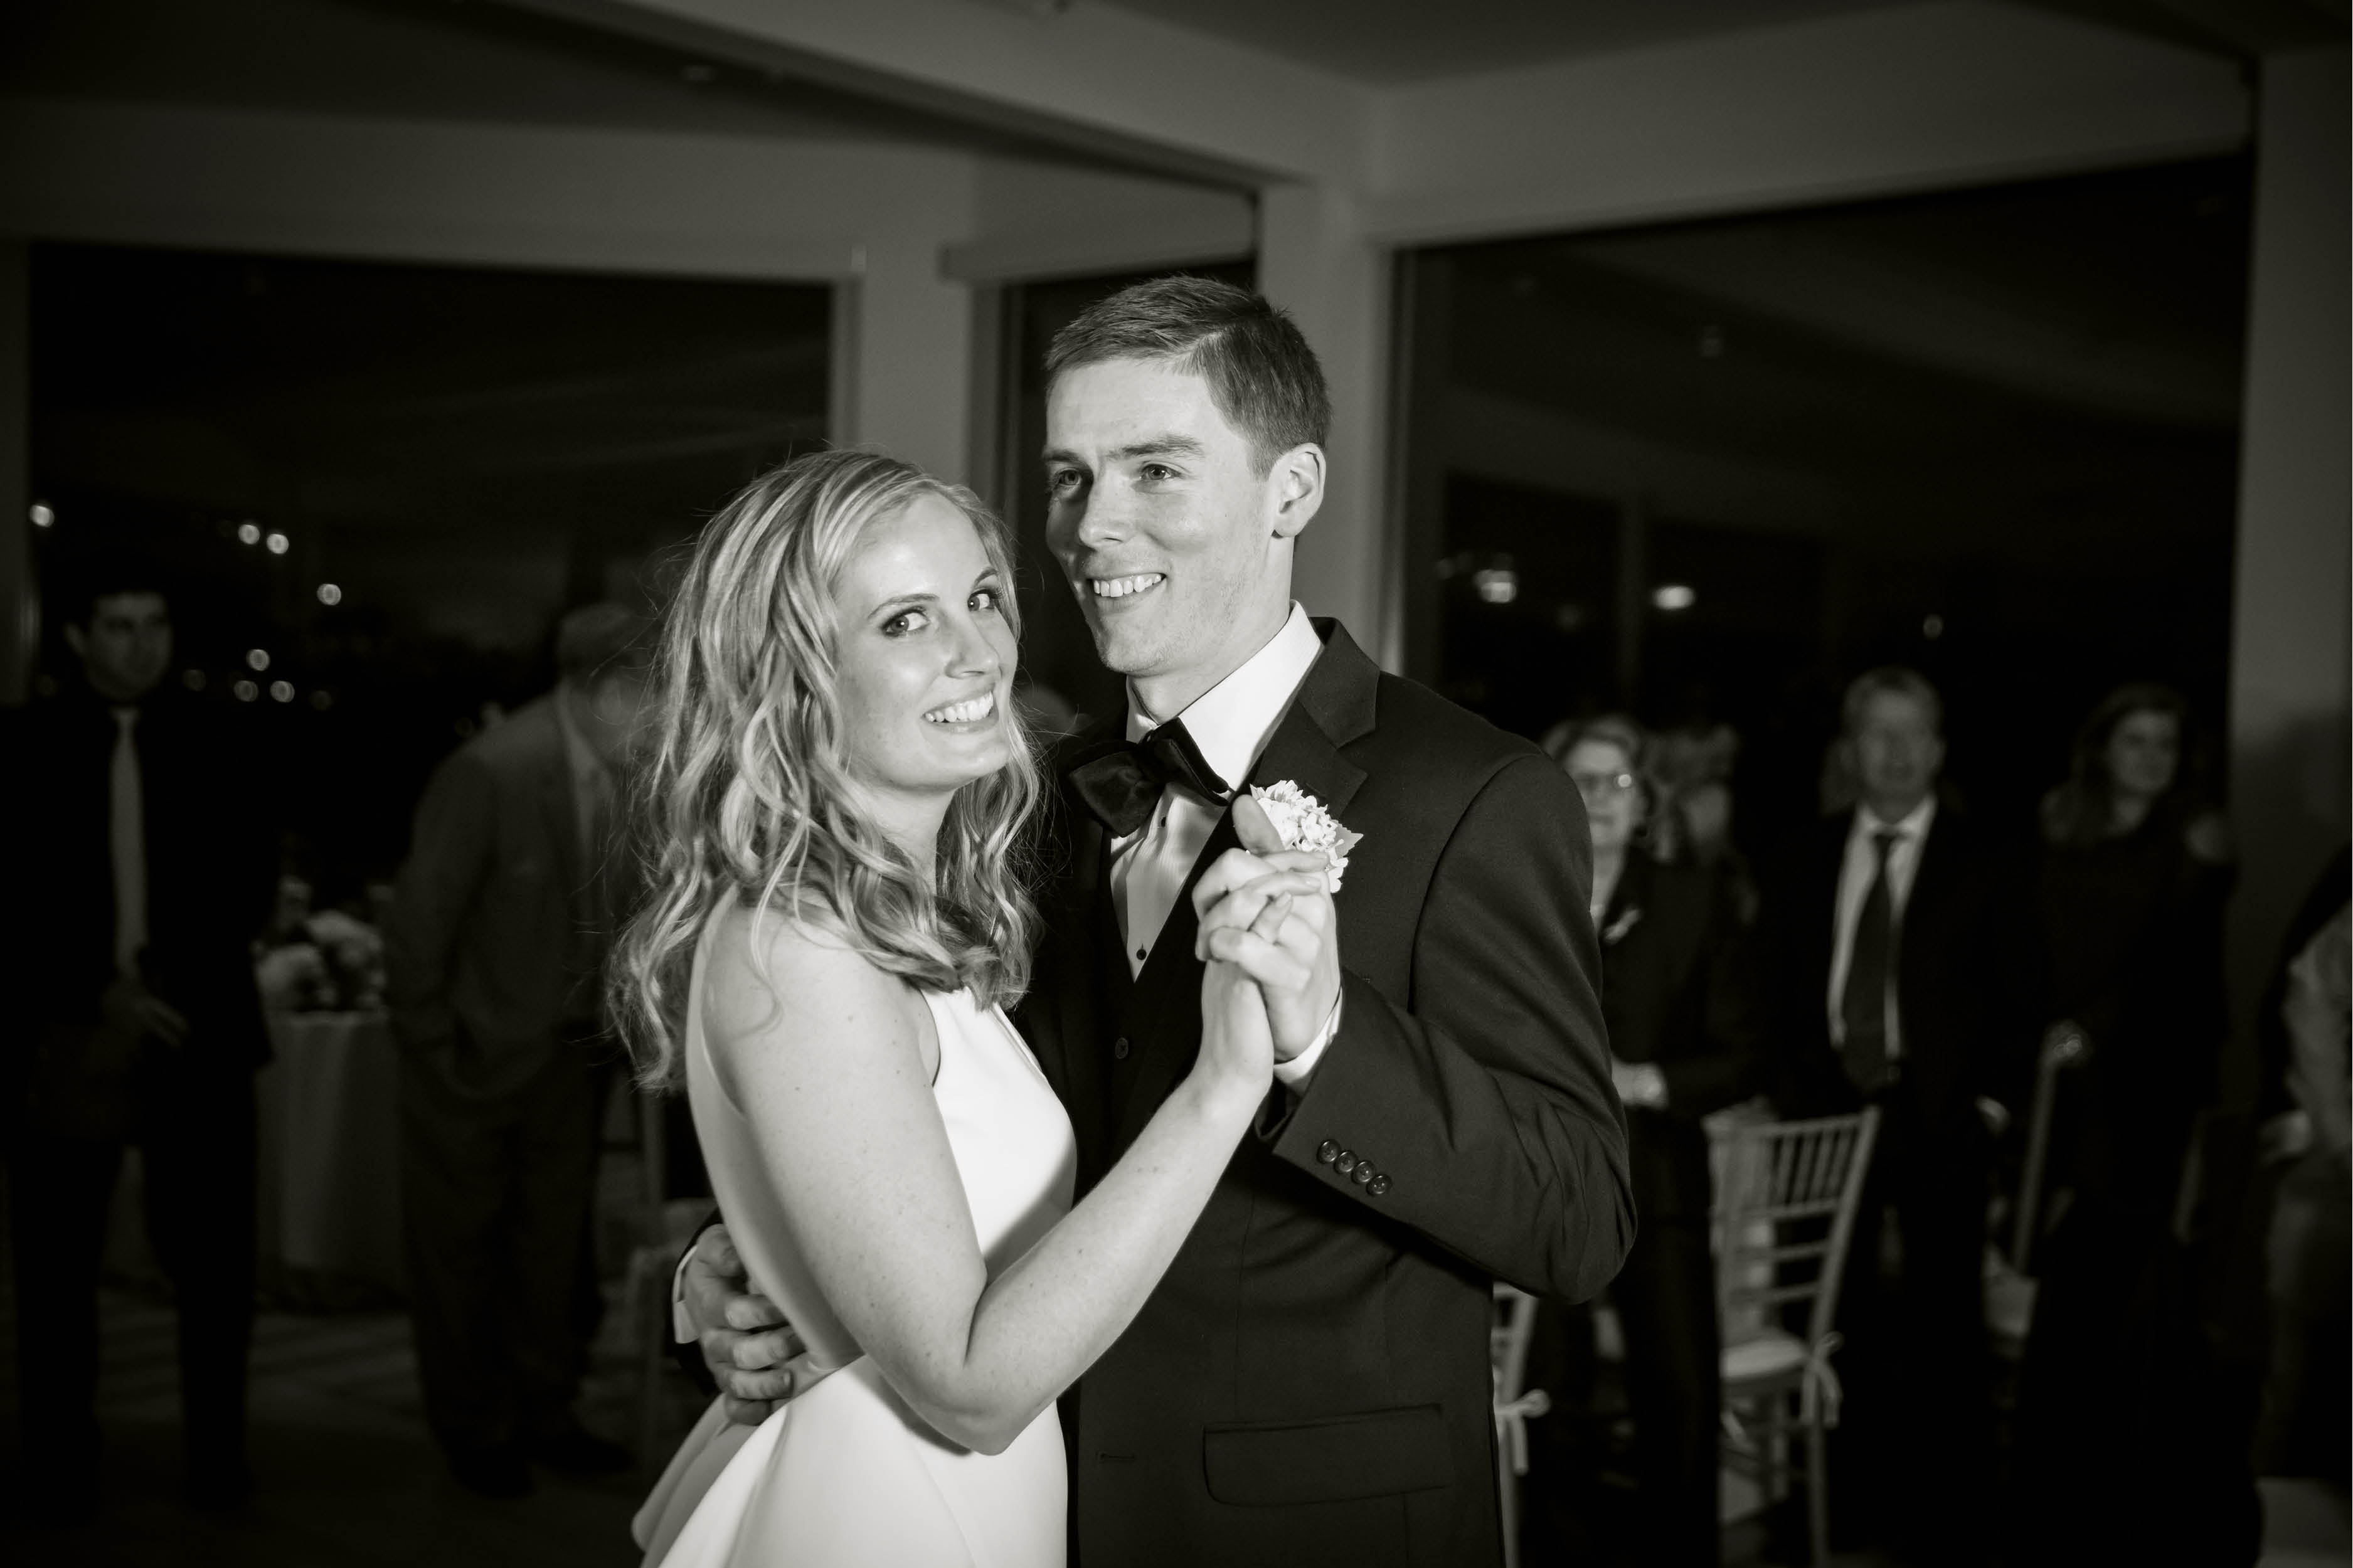 Emma_cleary_photography The Garrison NY wedding12